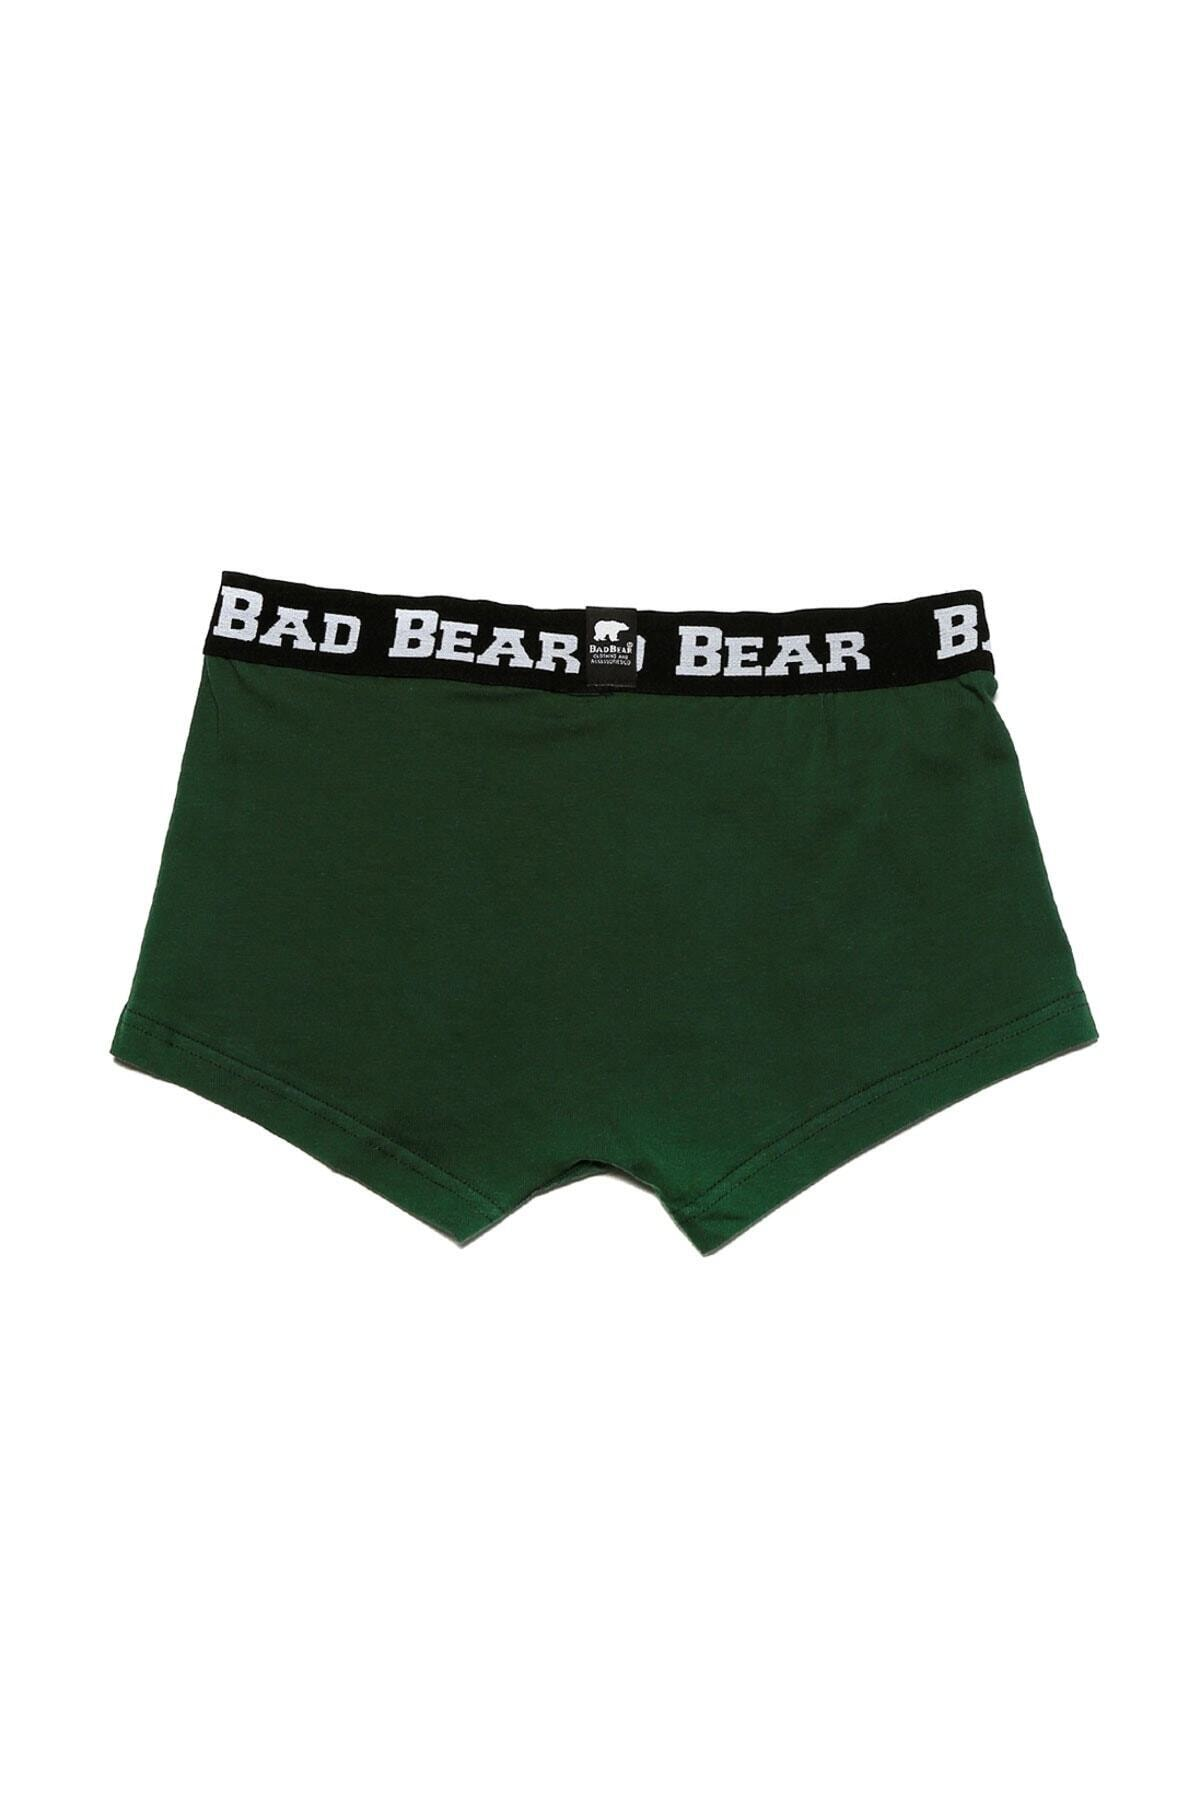 Bad Bear SOLID FOREST 2